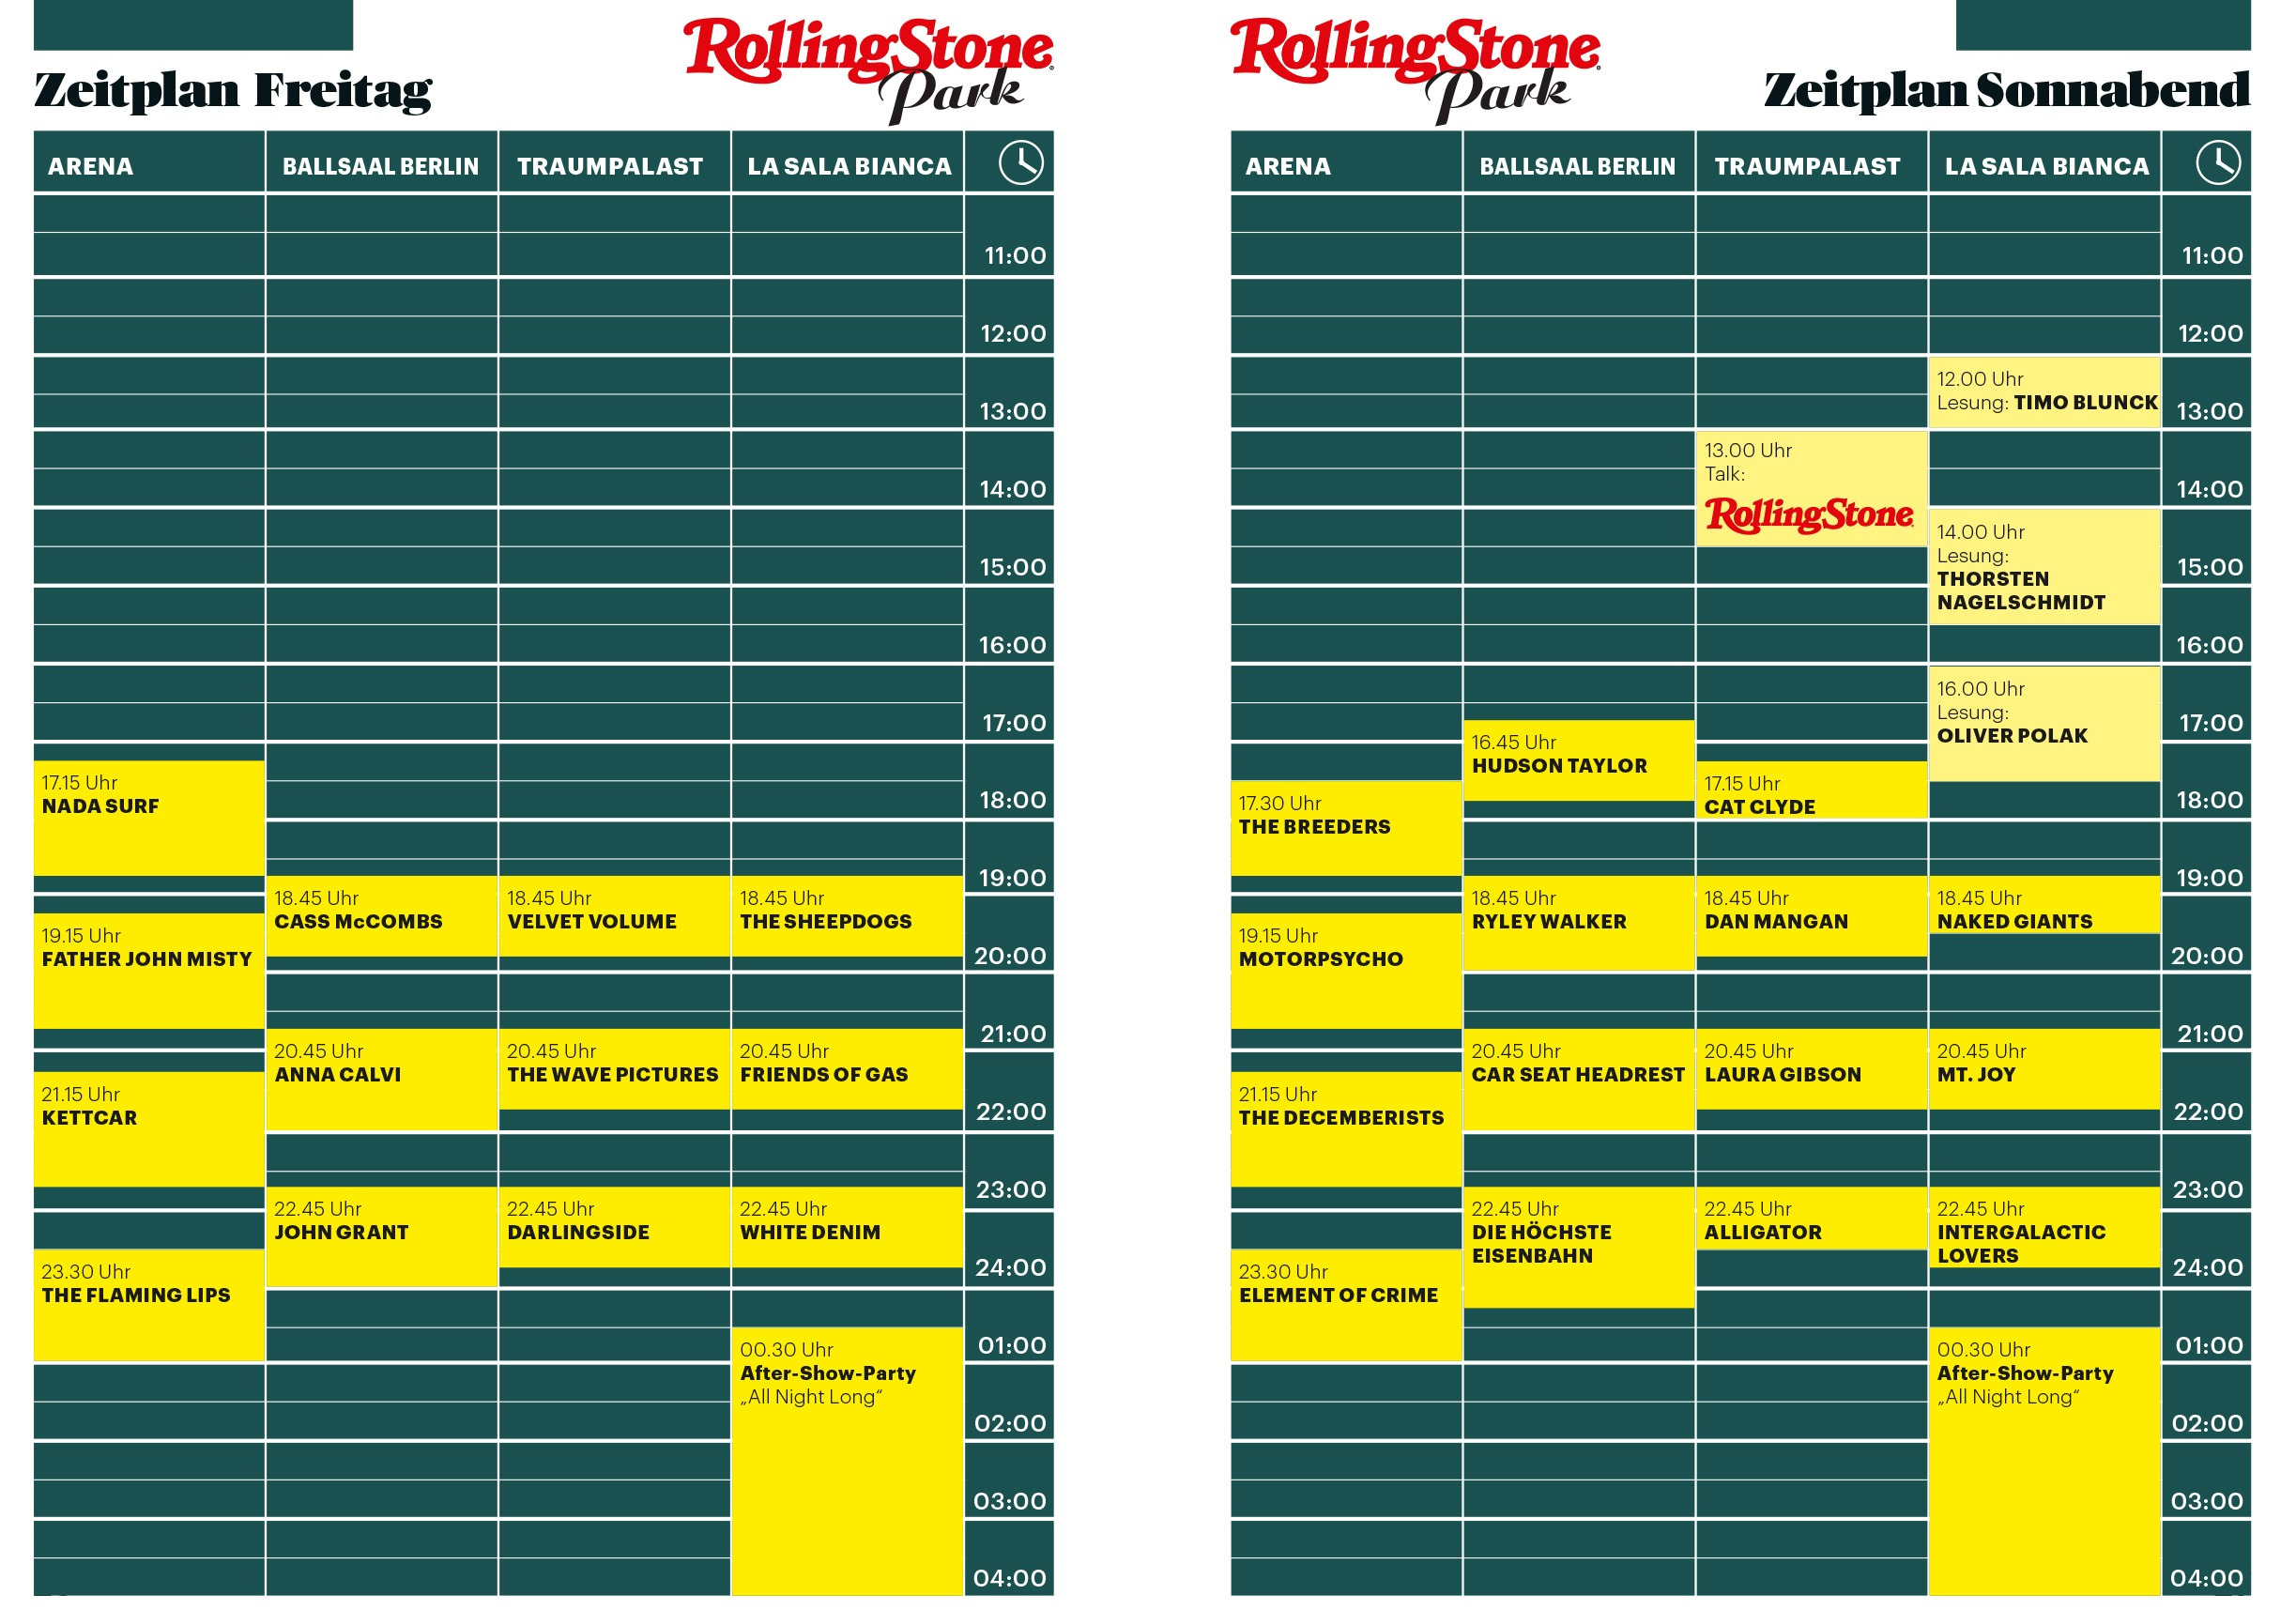 Rolling Stone Park 2018 Running Order